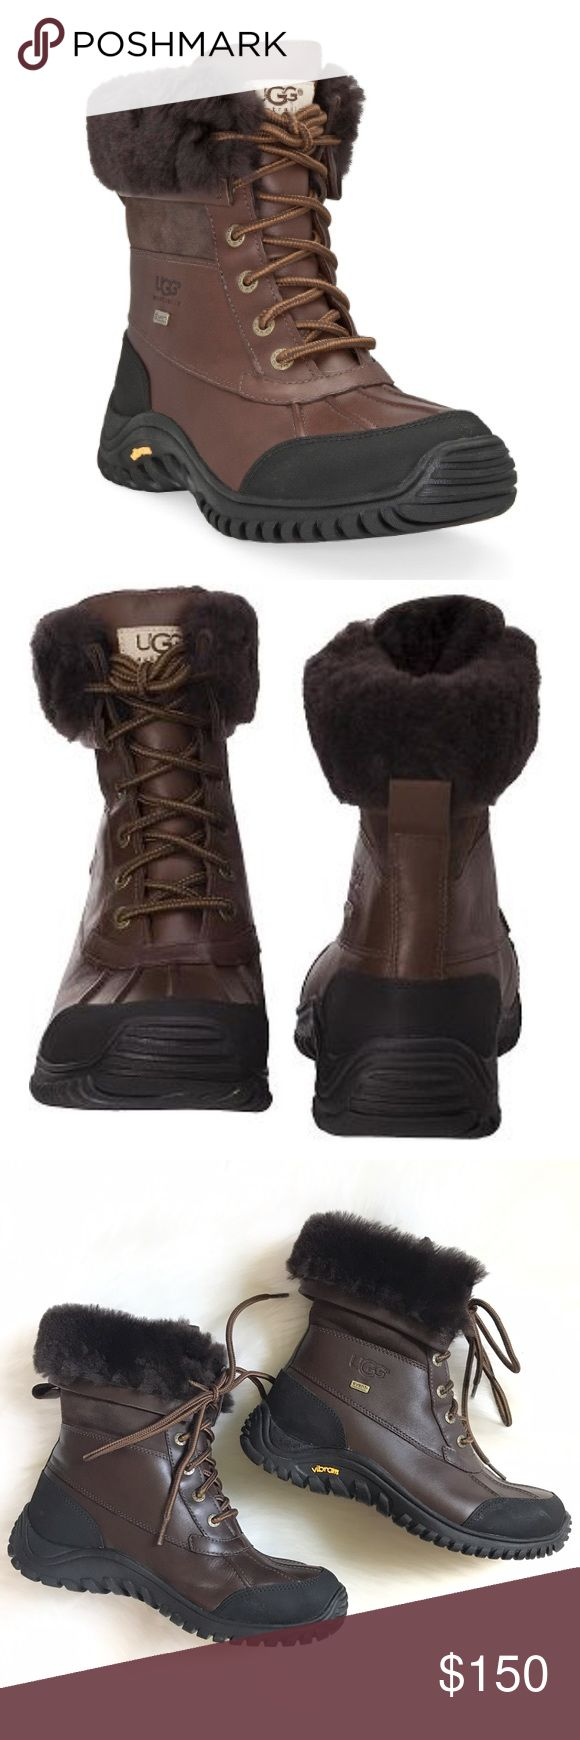 Ugg Adirondack snow boots brown leather size 10 Great condition. Worn maybe 10 times. Very warm and comfy. Does not come with box. UGG Shoes Winter & Rain Boots